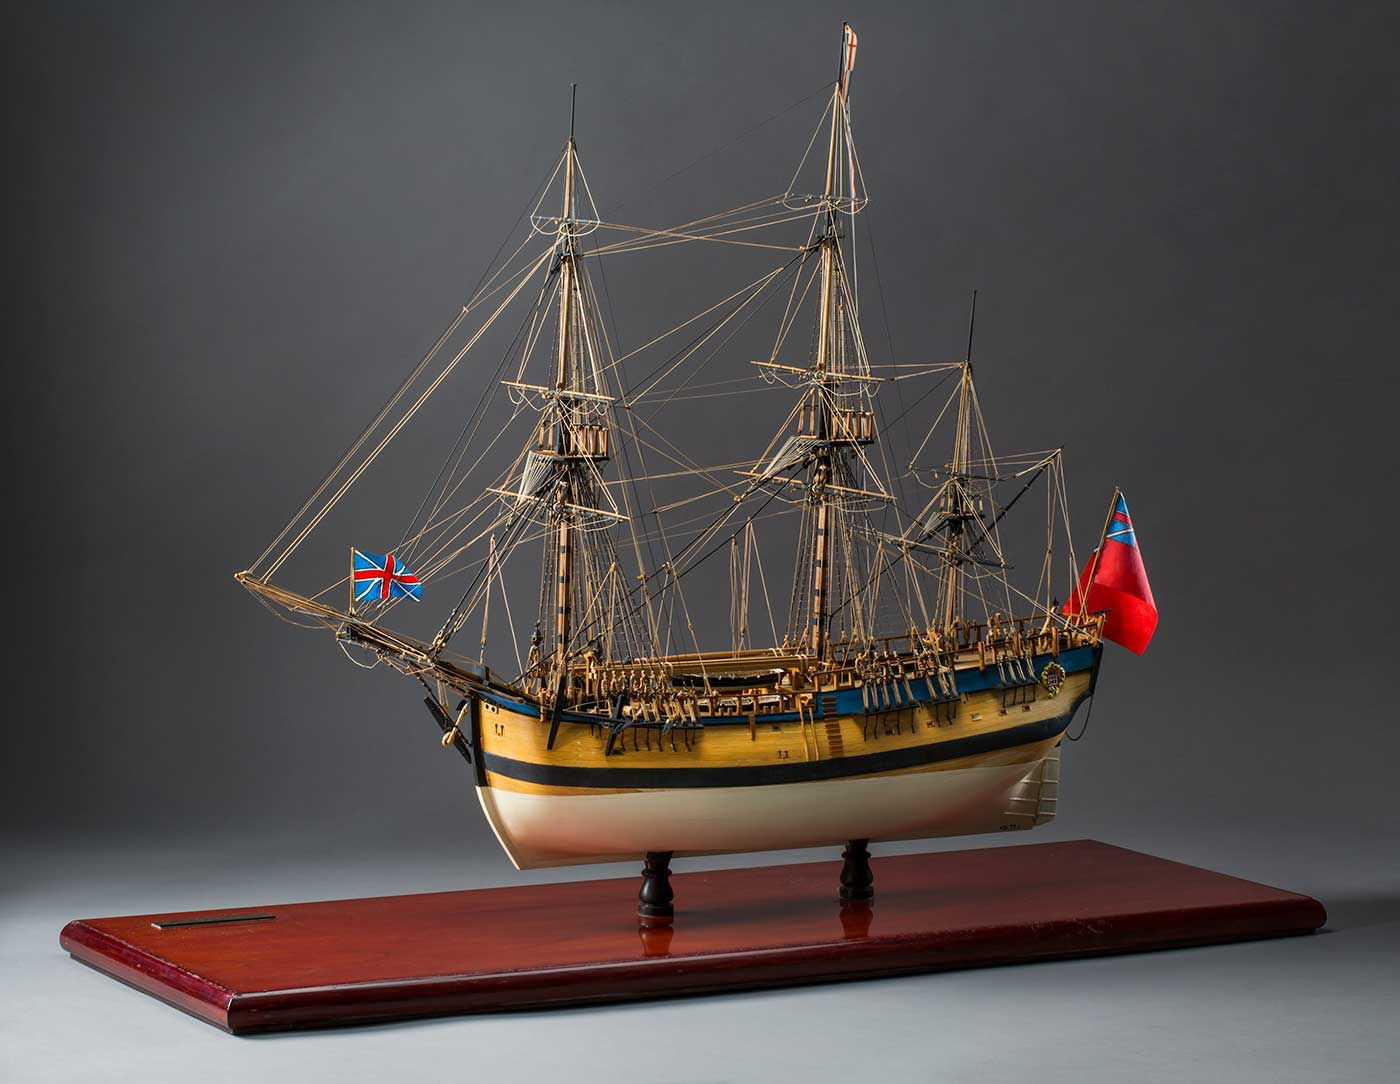 Small mounted model of a sailing ship with three masts. - click to view larger image